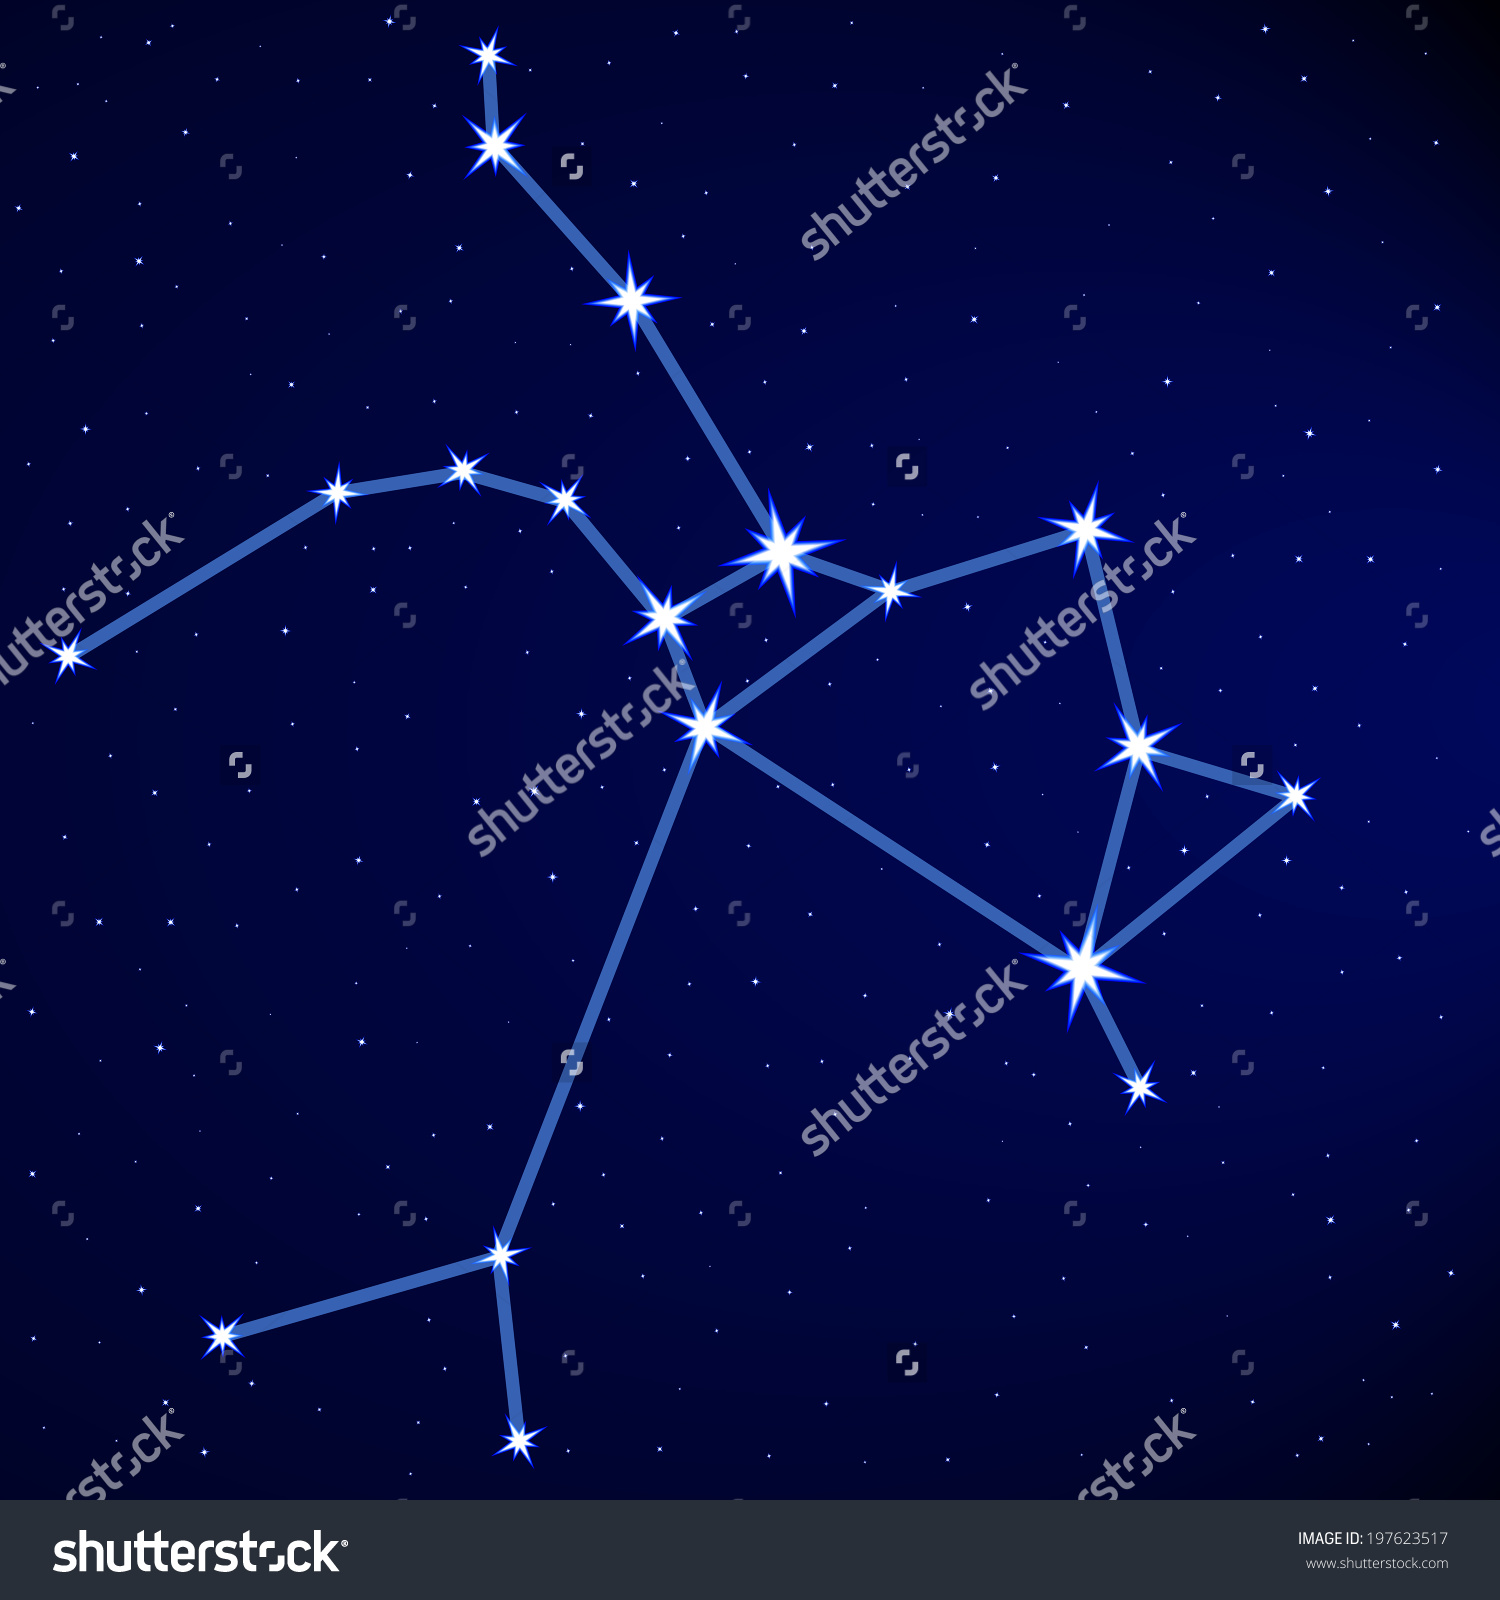 Sagittarius Constellation On Starry Sky Stock Vector 197623517.